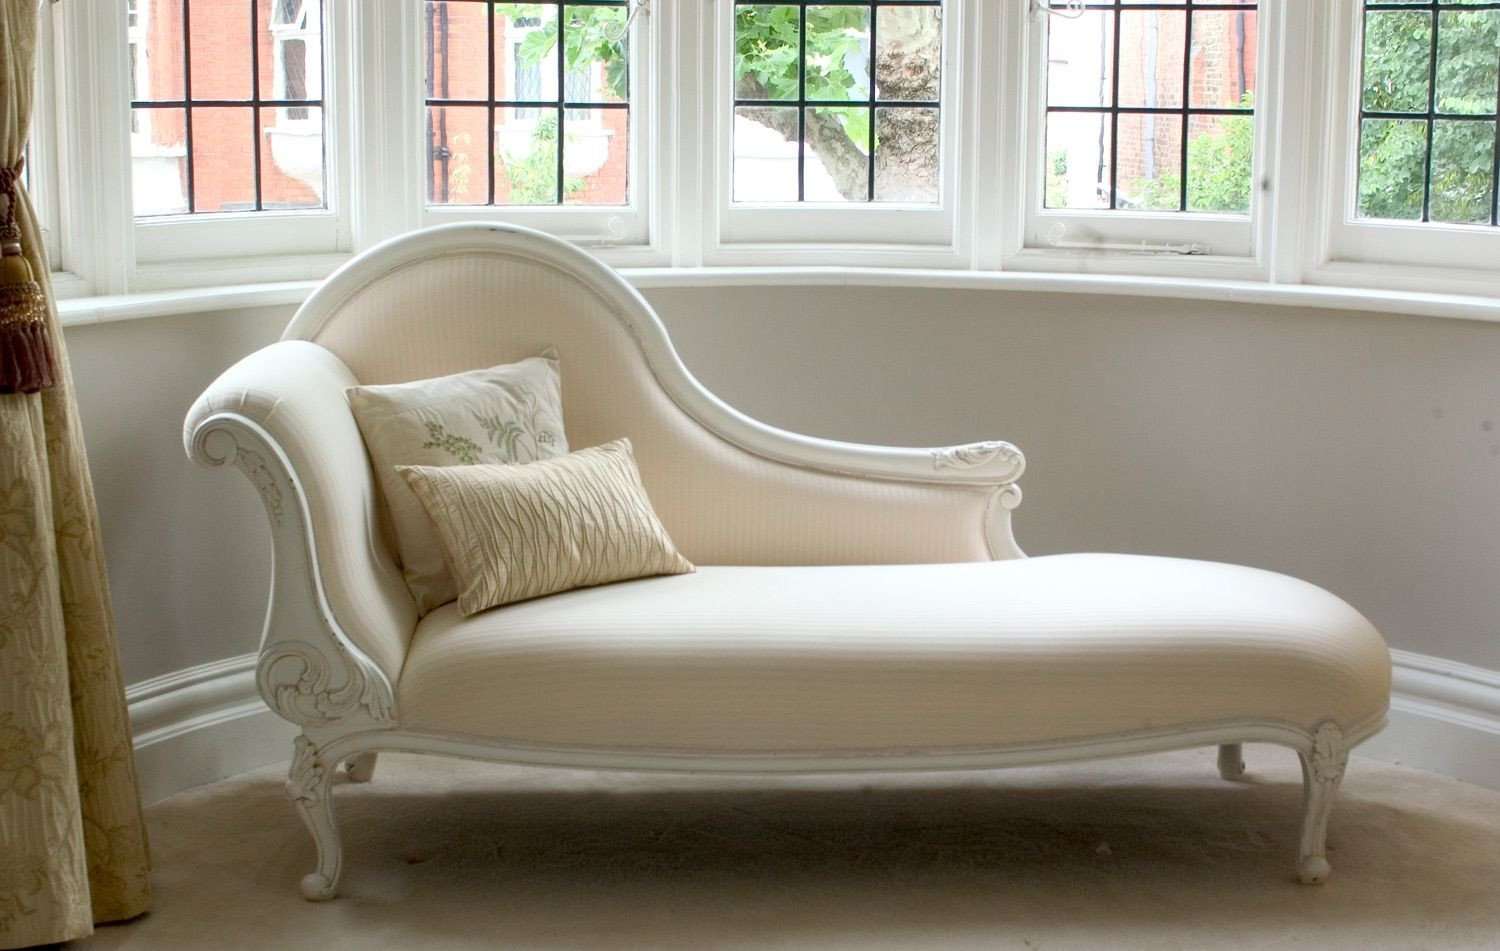 Chaise Chair for Bedroom Luxury Classical White Chaise Longue Sweet Pea and Willow